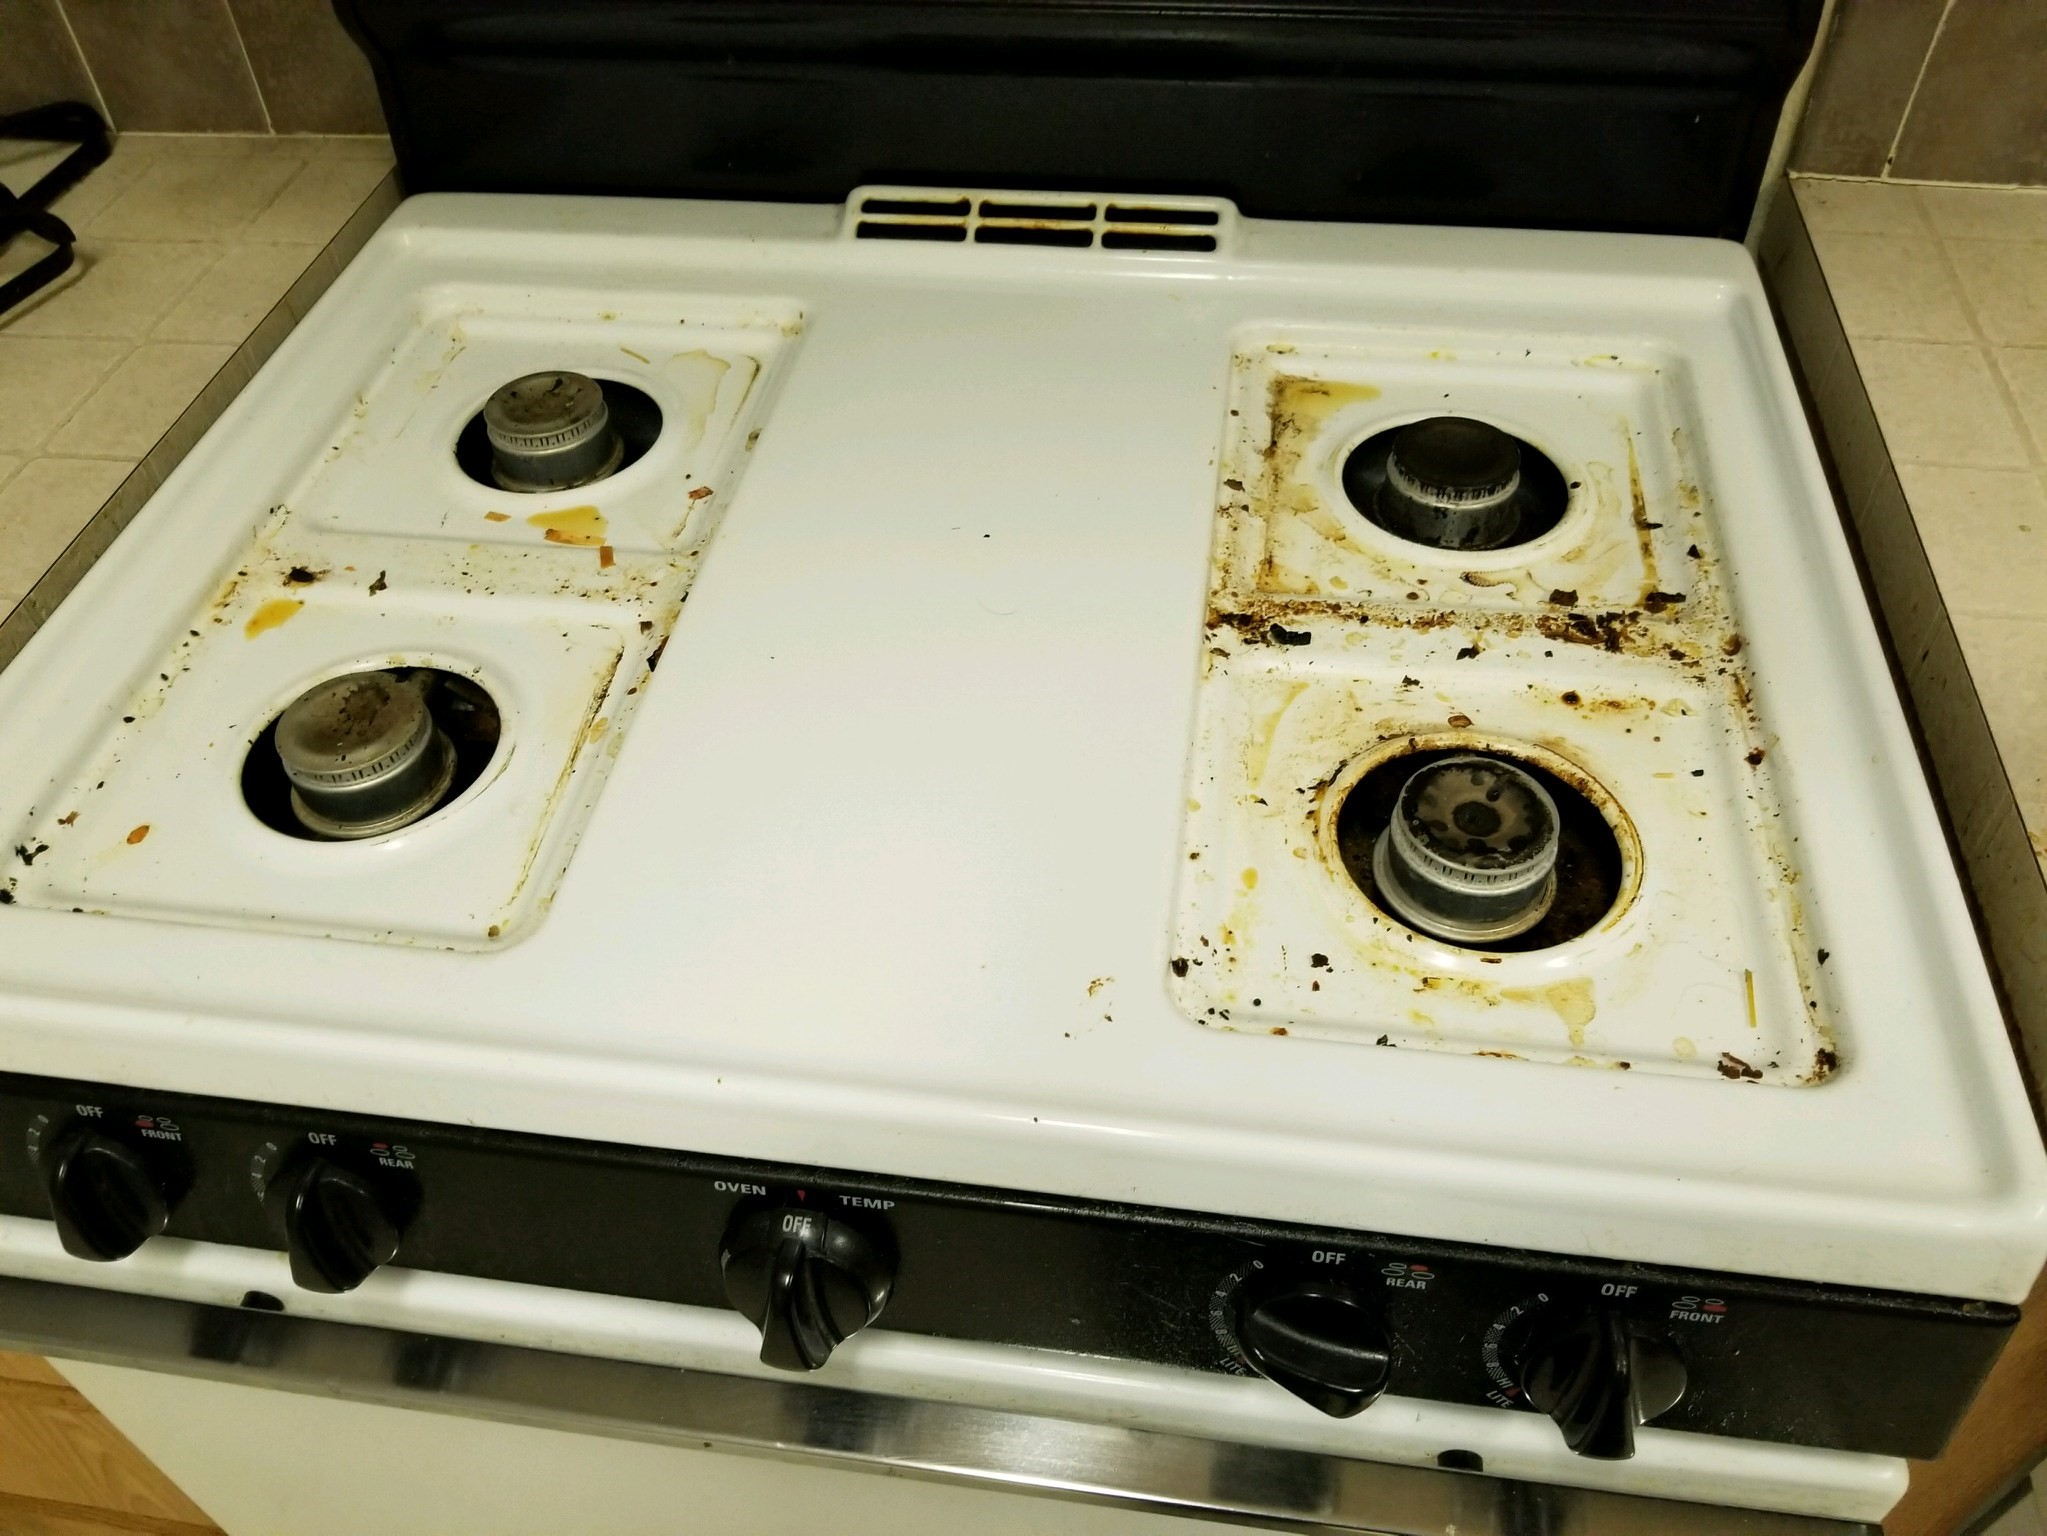 stove top before being cleaned